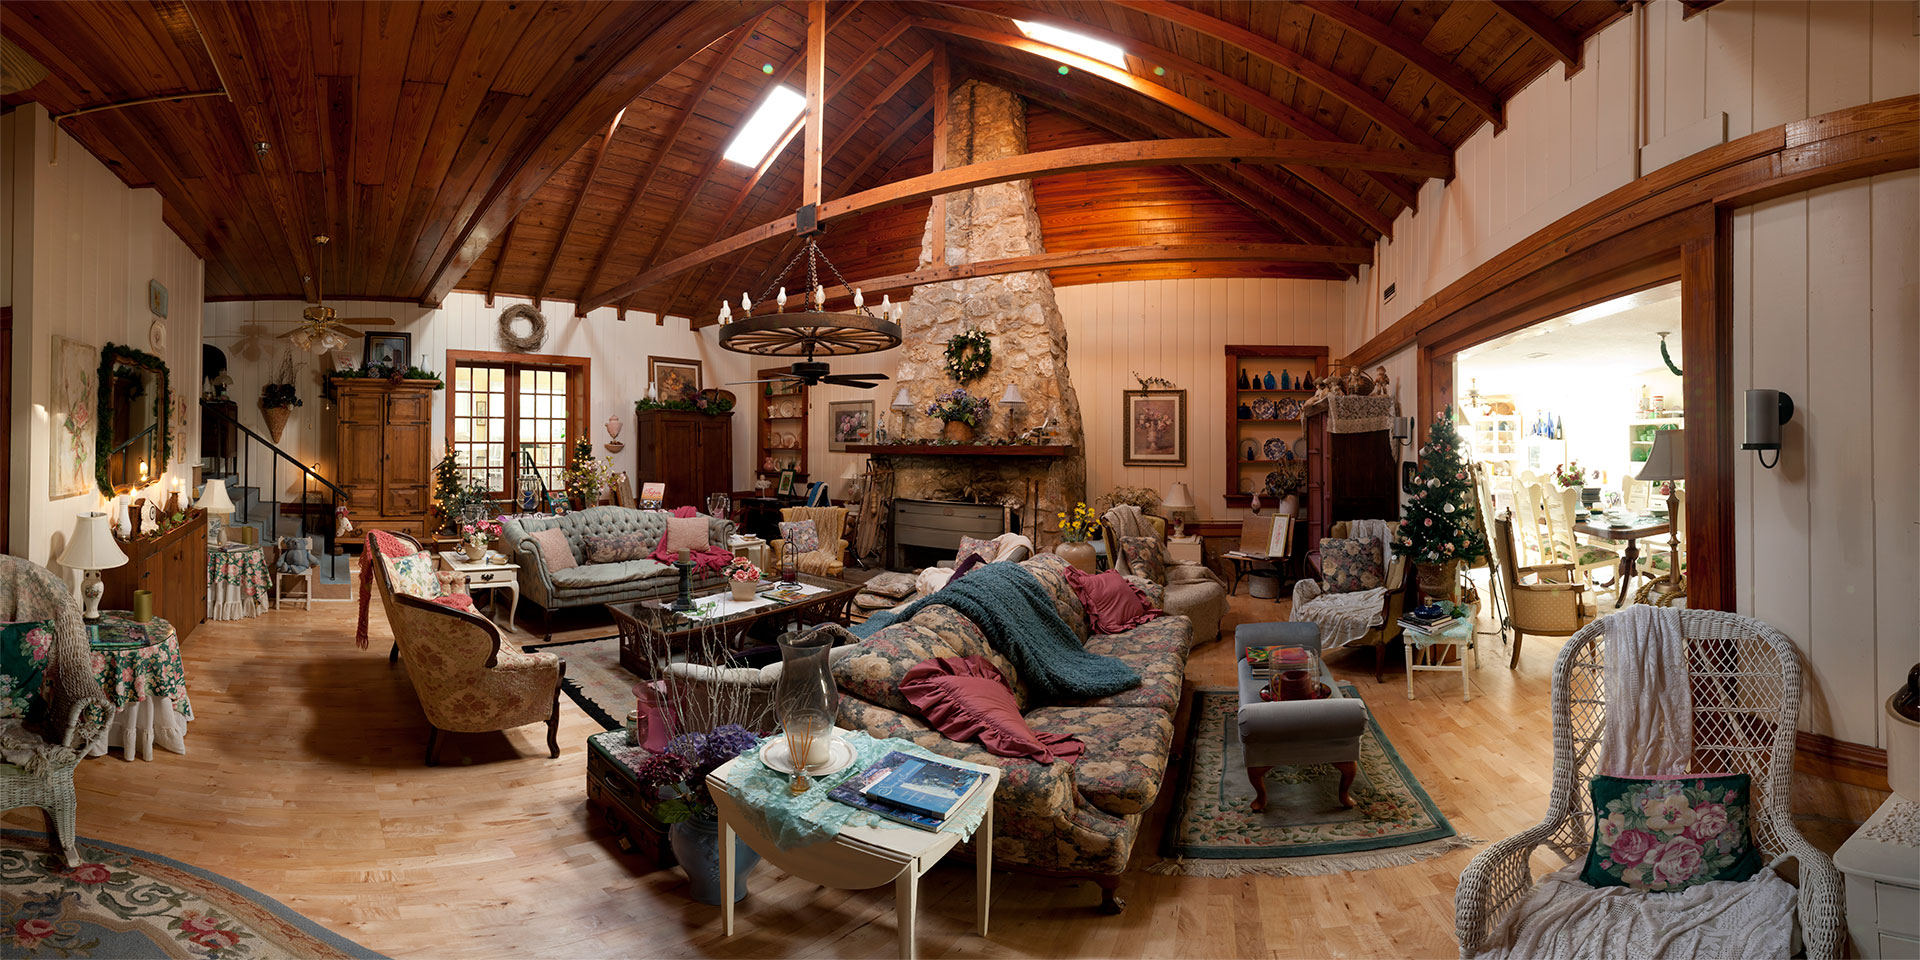 Great Hall, The Lakehouse, Inverness, Florida, USA